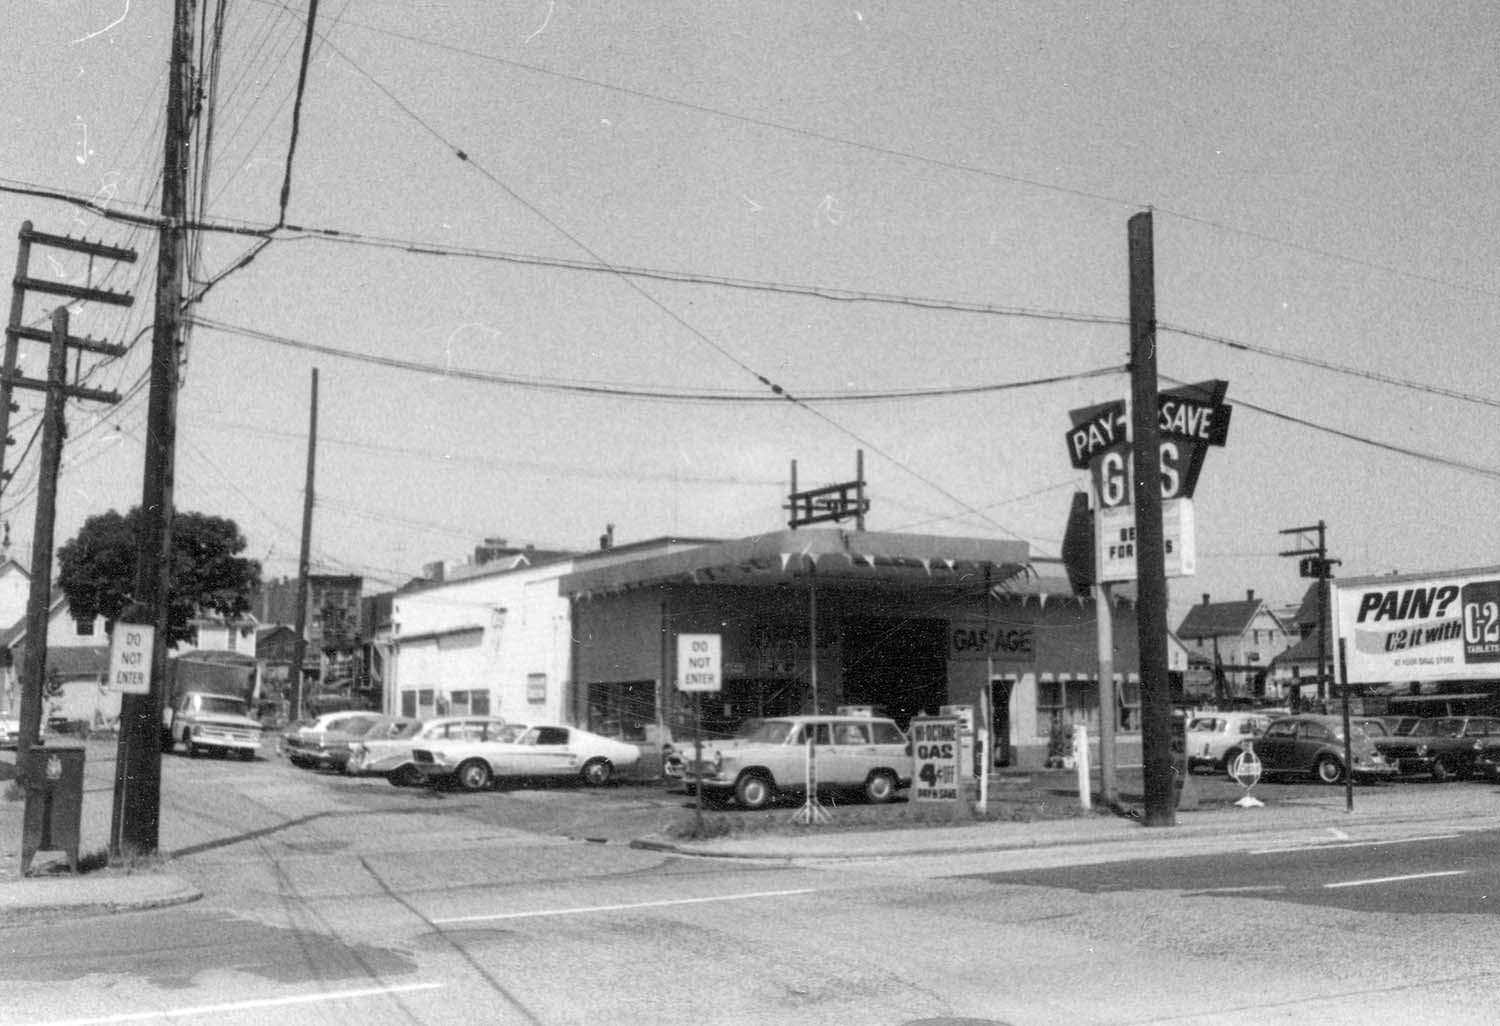 Front and west side view of subject [219 - 221 Prior Street] at lane, 1969. Photograph shows Iberica Garage and Northland Cafe. Reference code COV-S168-: CVA 203-53